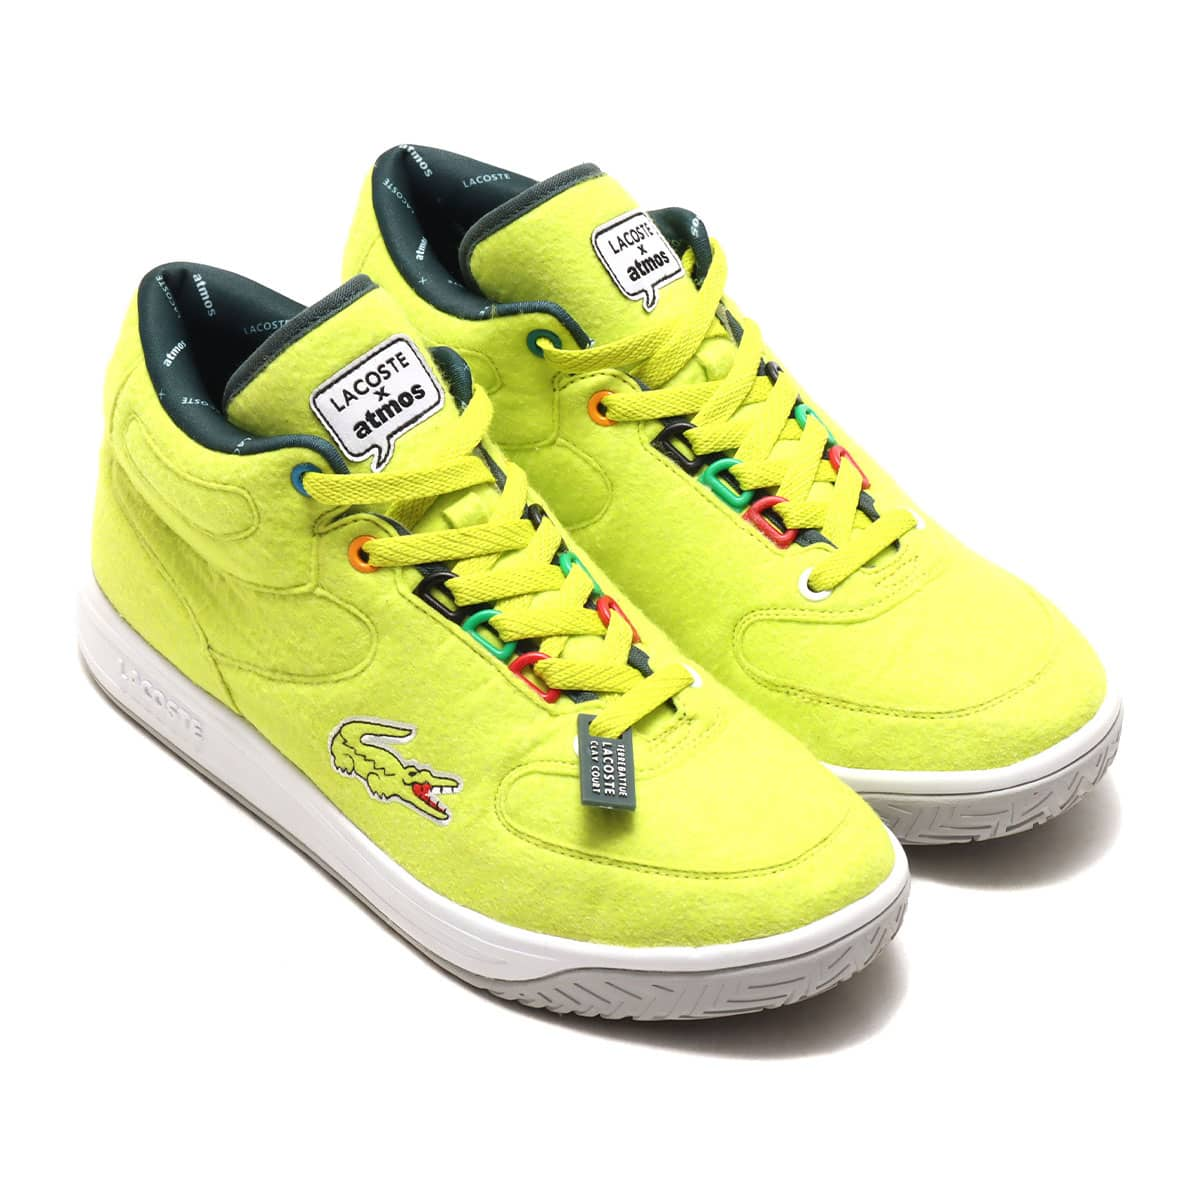 LACOSTE × atmos BALSA ATM 0120 1 YLW/GRN 20SU-S_photo_large